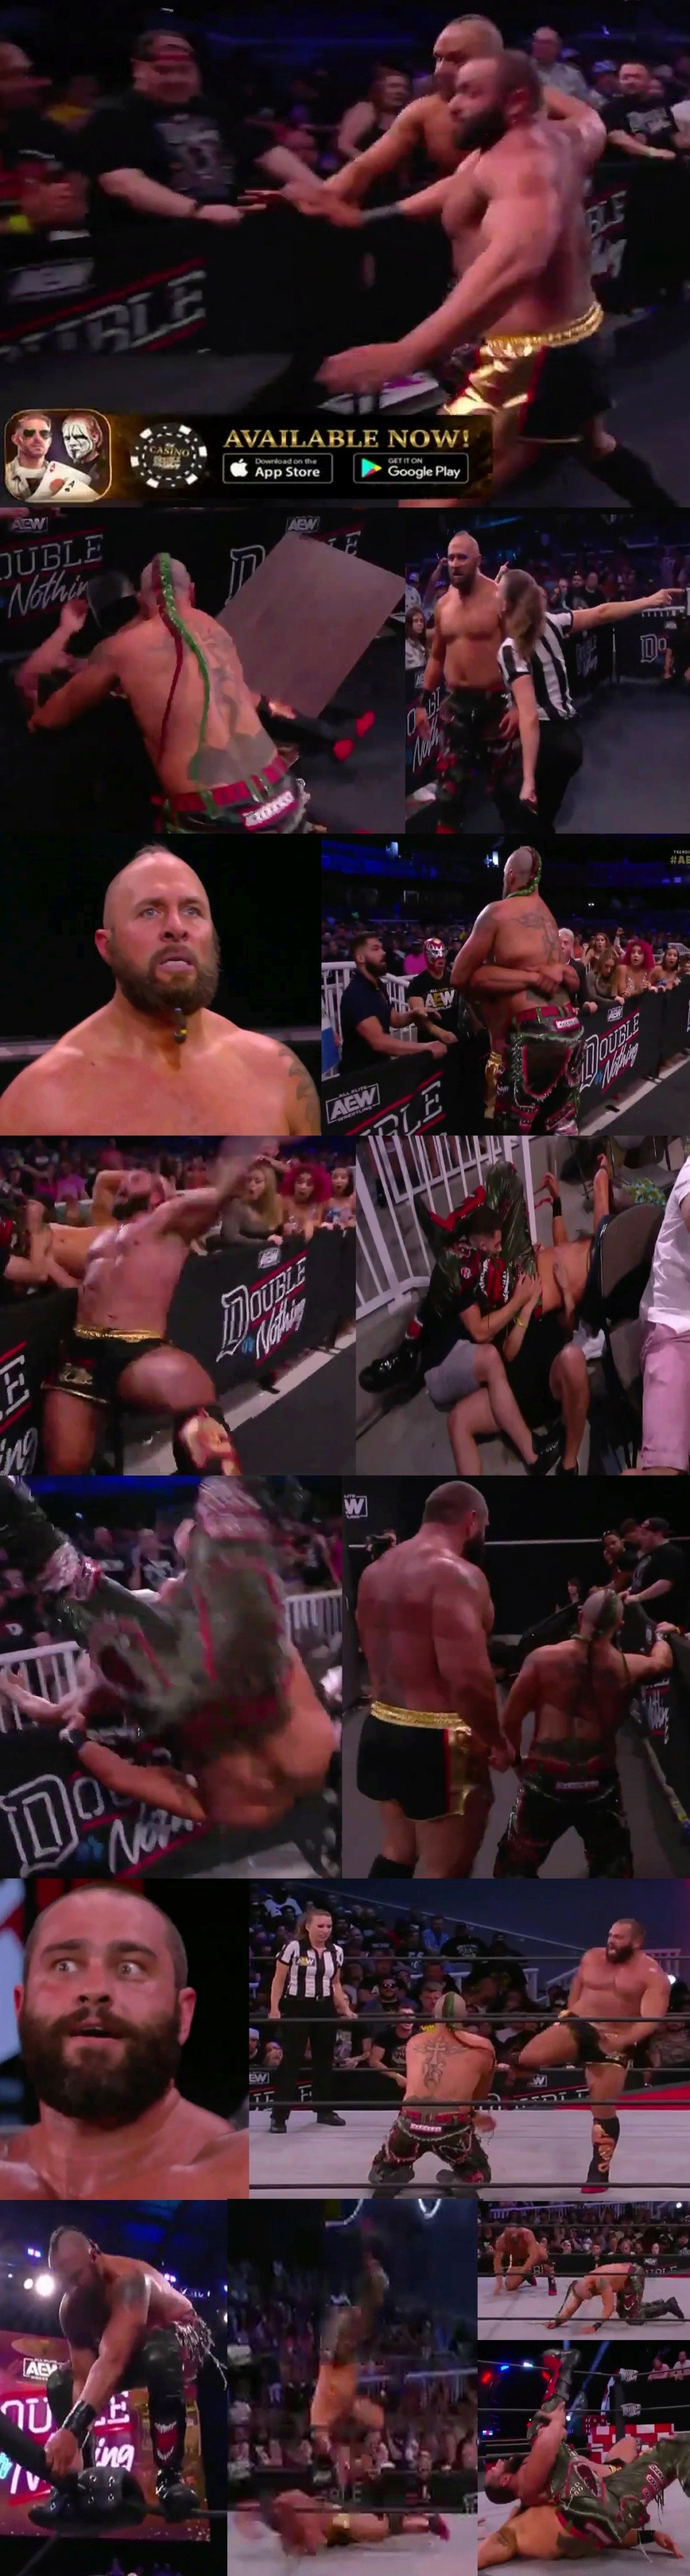 Official Wrestling PPV Topics: WWE Extreme Rules Results! - Page 3 Aew_do53